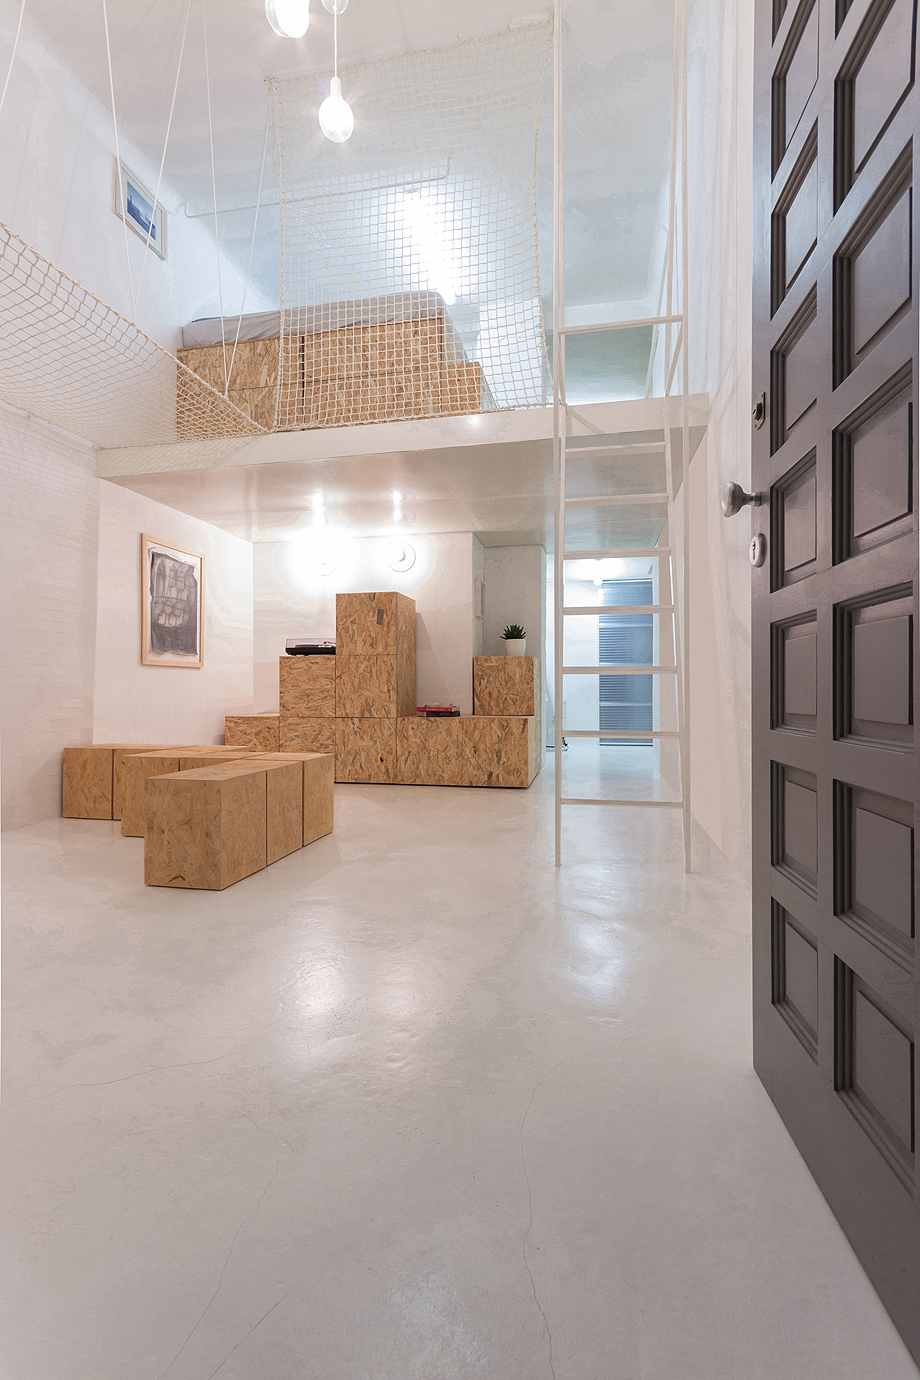 stairs officina dell'architettura (3)